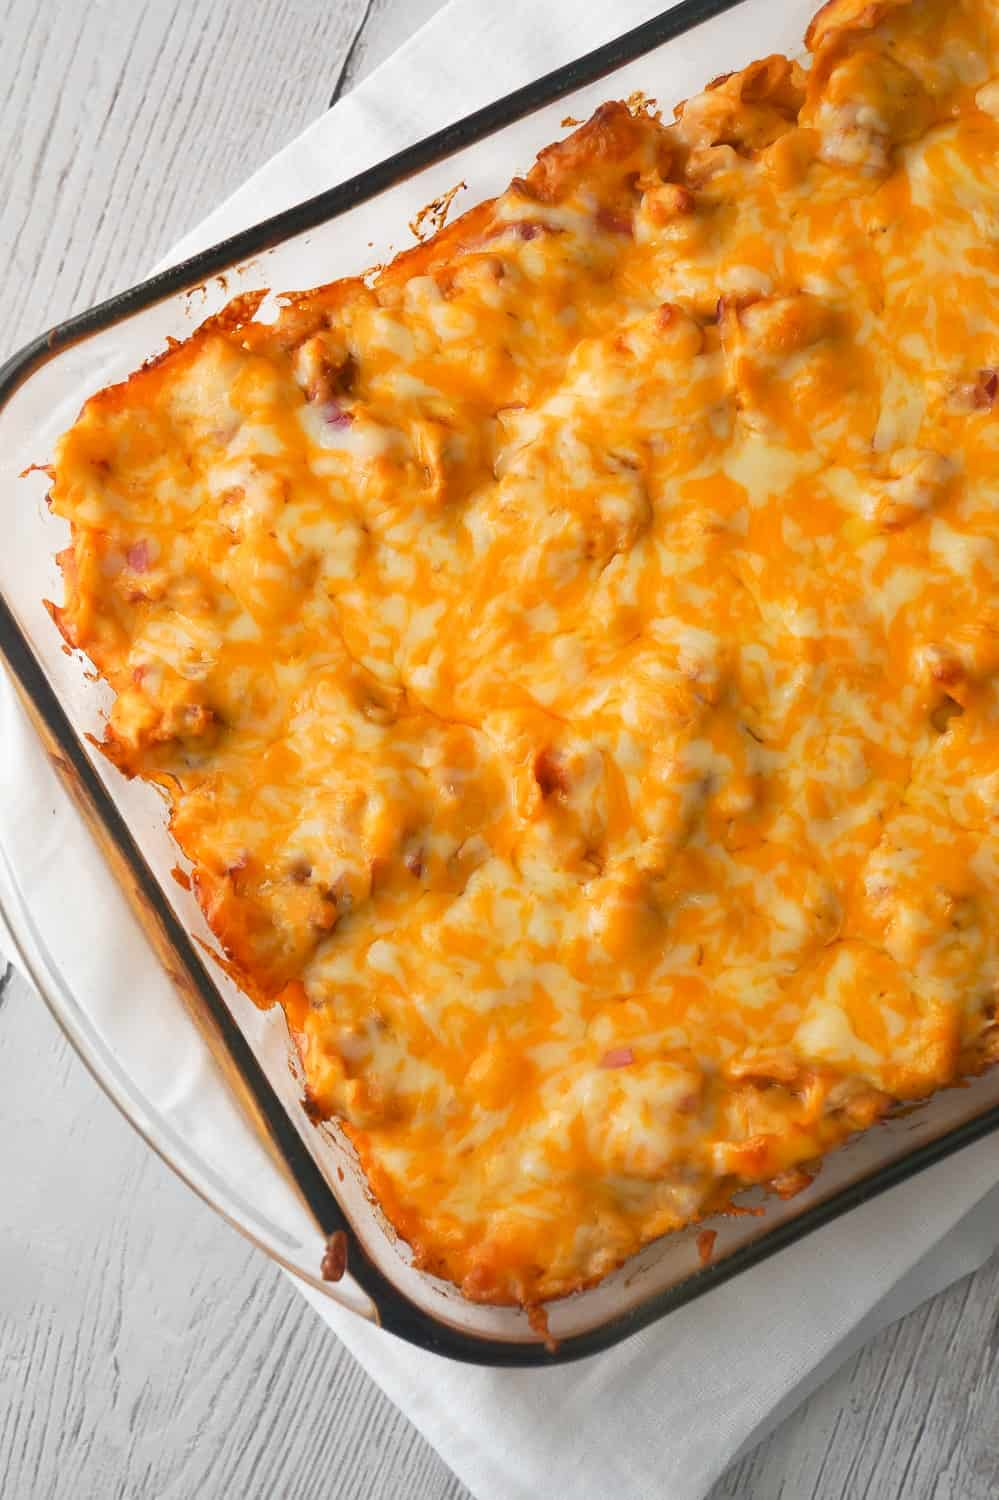 BBQ Chicken Tortellini Casserole is an easy dinner recipe using rotisserie chicken. This baked tortellini is loaded with bacon, chicken, red onions, BBQ sauce and cheddar cheese.